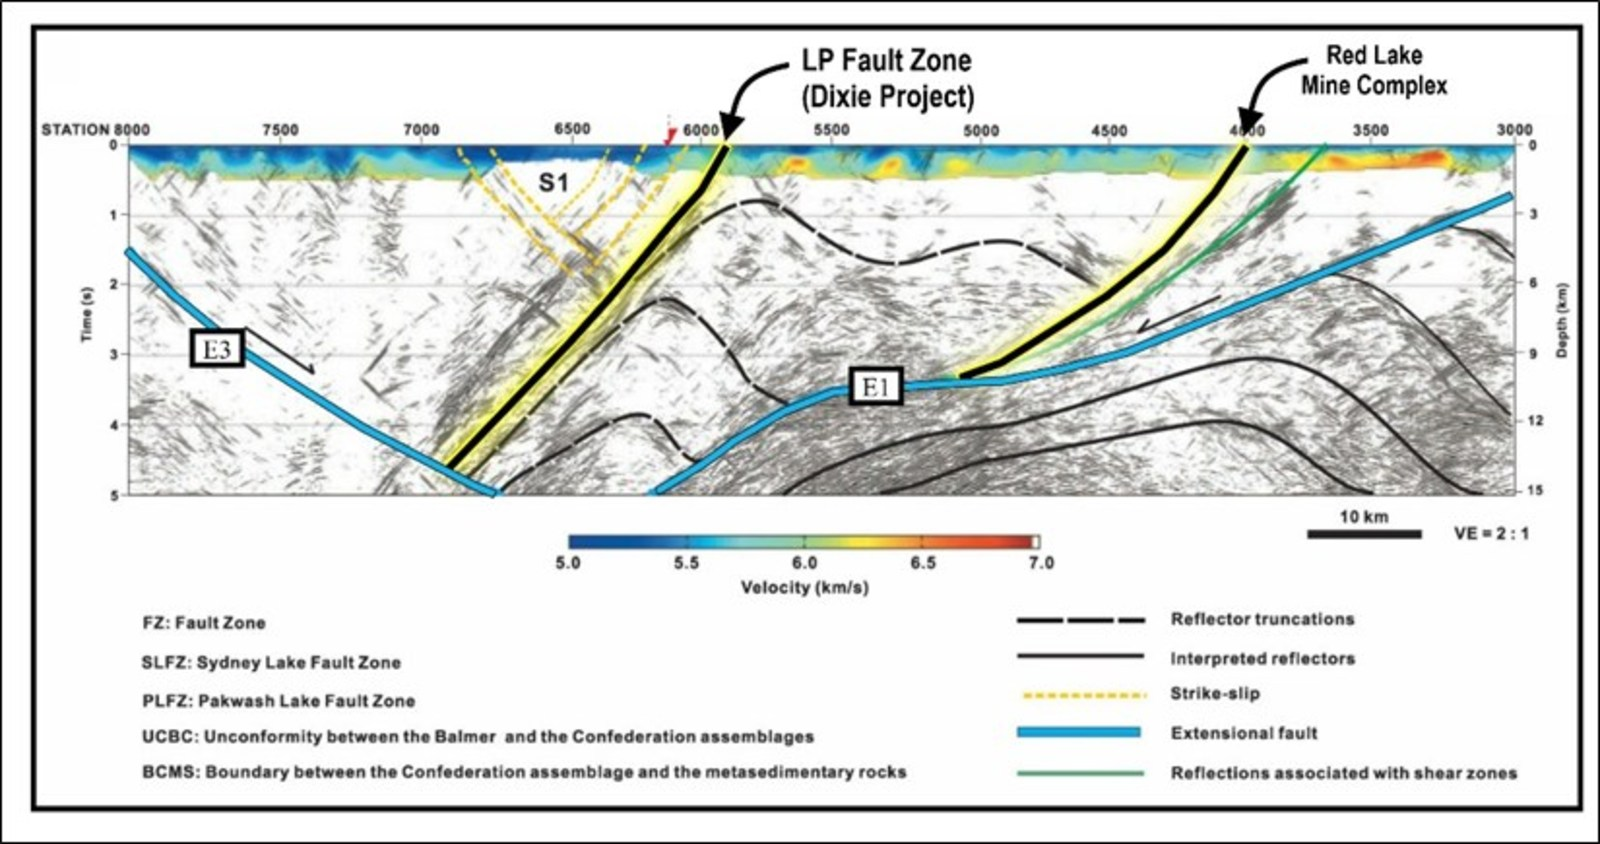 Figure 2: Lithoprobe 3D time travel tomography cross sectional interpretation showing two major crustal-scale structures in the Red Lake district, modified from Zeng and Calvert, 2006.  The structure on the right is associated with the main mine trend including Newmont Goldcorp Corp.'s Red Lake Gold Mine.  The structure on the left is the LP Fault at Great Bear's Dixie project.